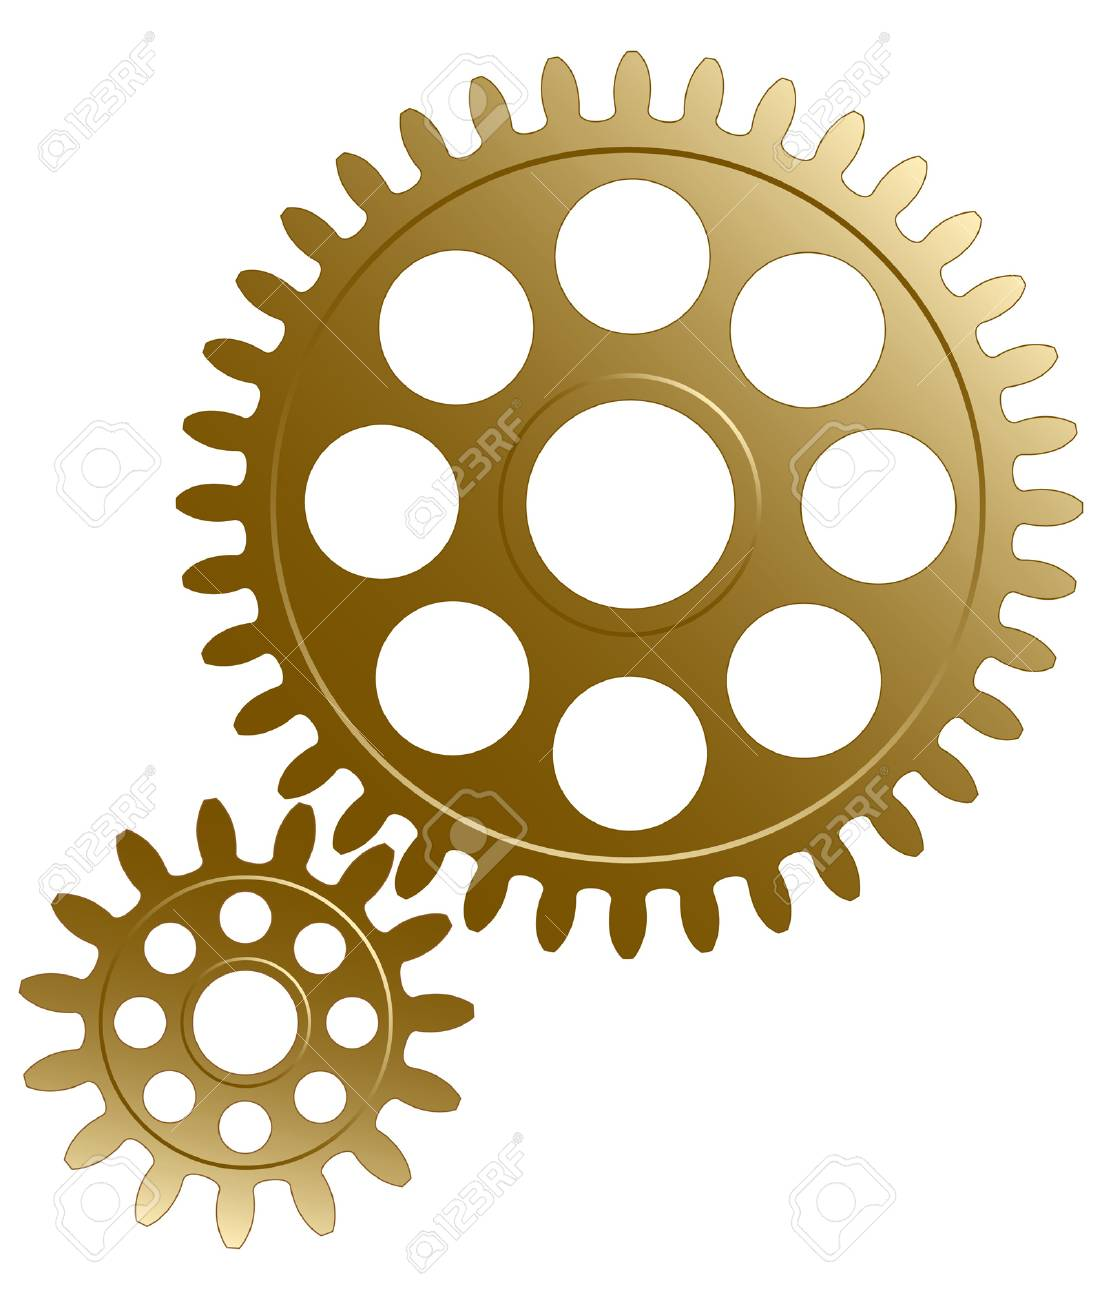 Gear set on the white background. Stock Vector - 5187342